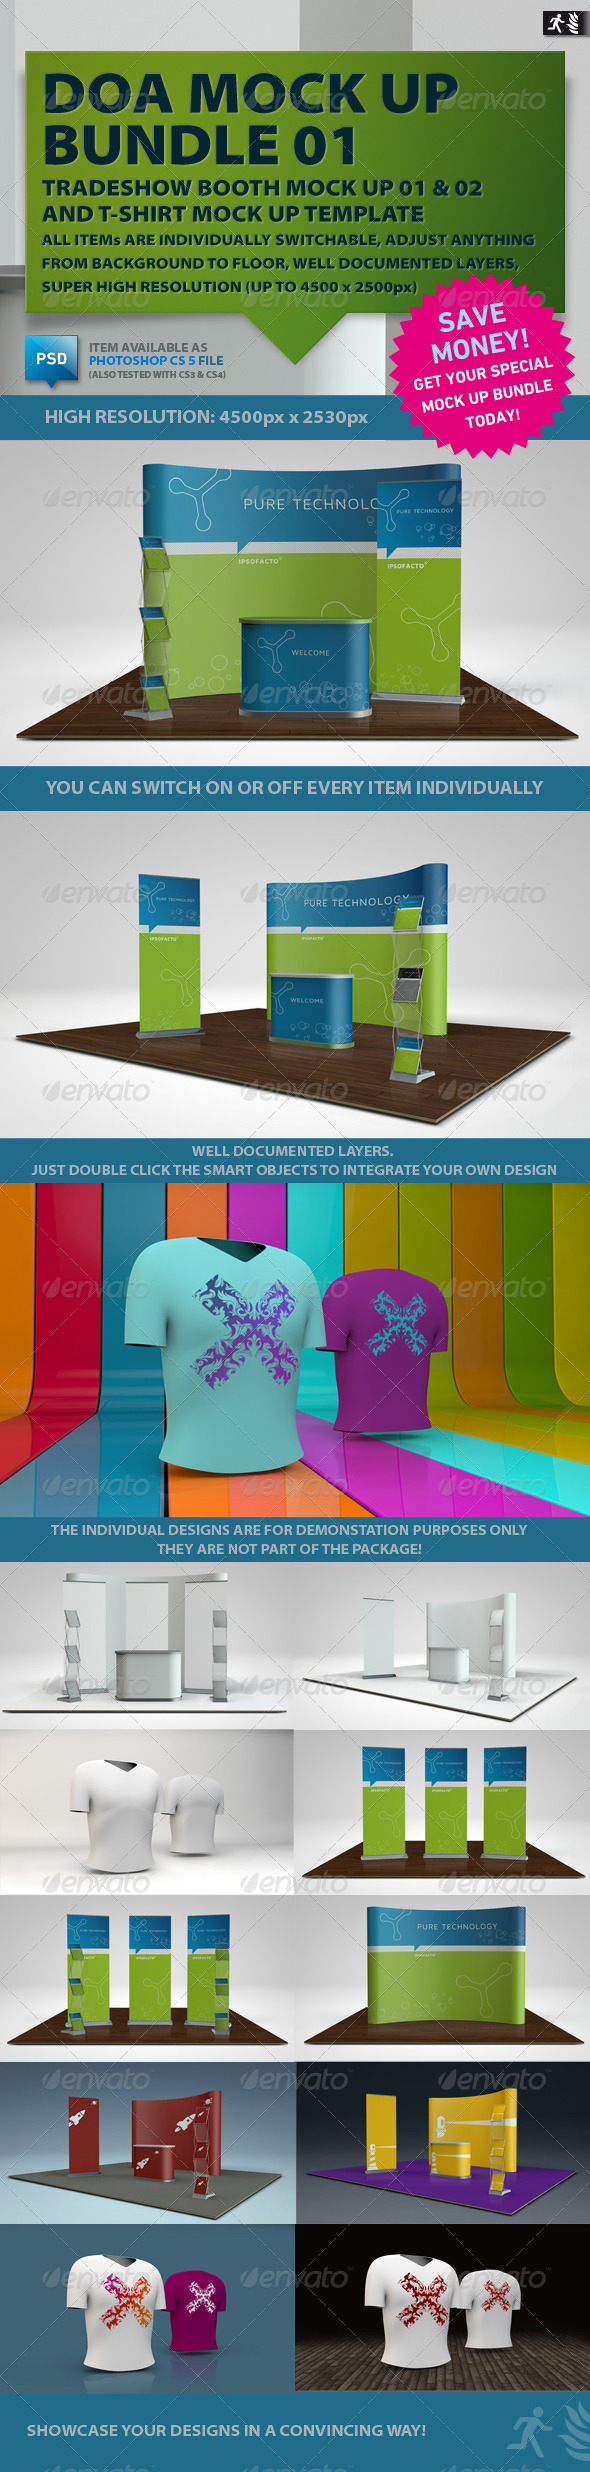 DOA Mock Up Bundle 01 - Miscellaneous Displays